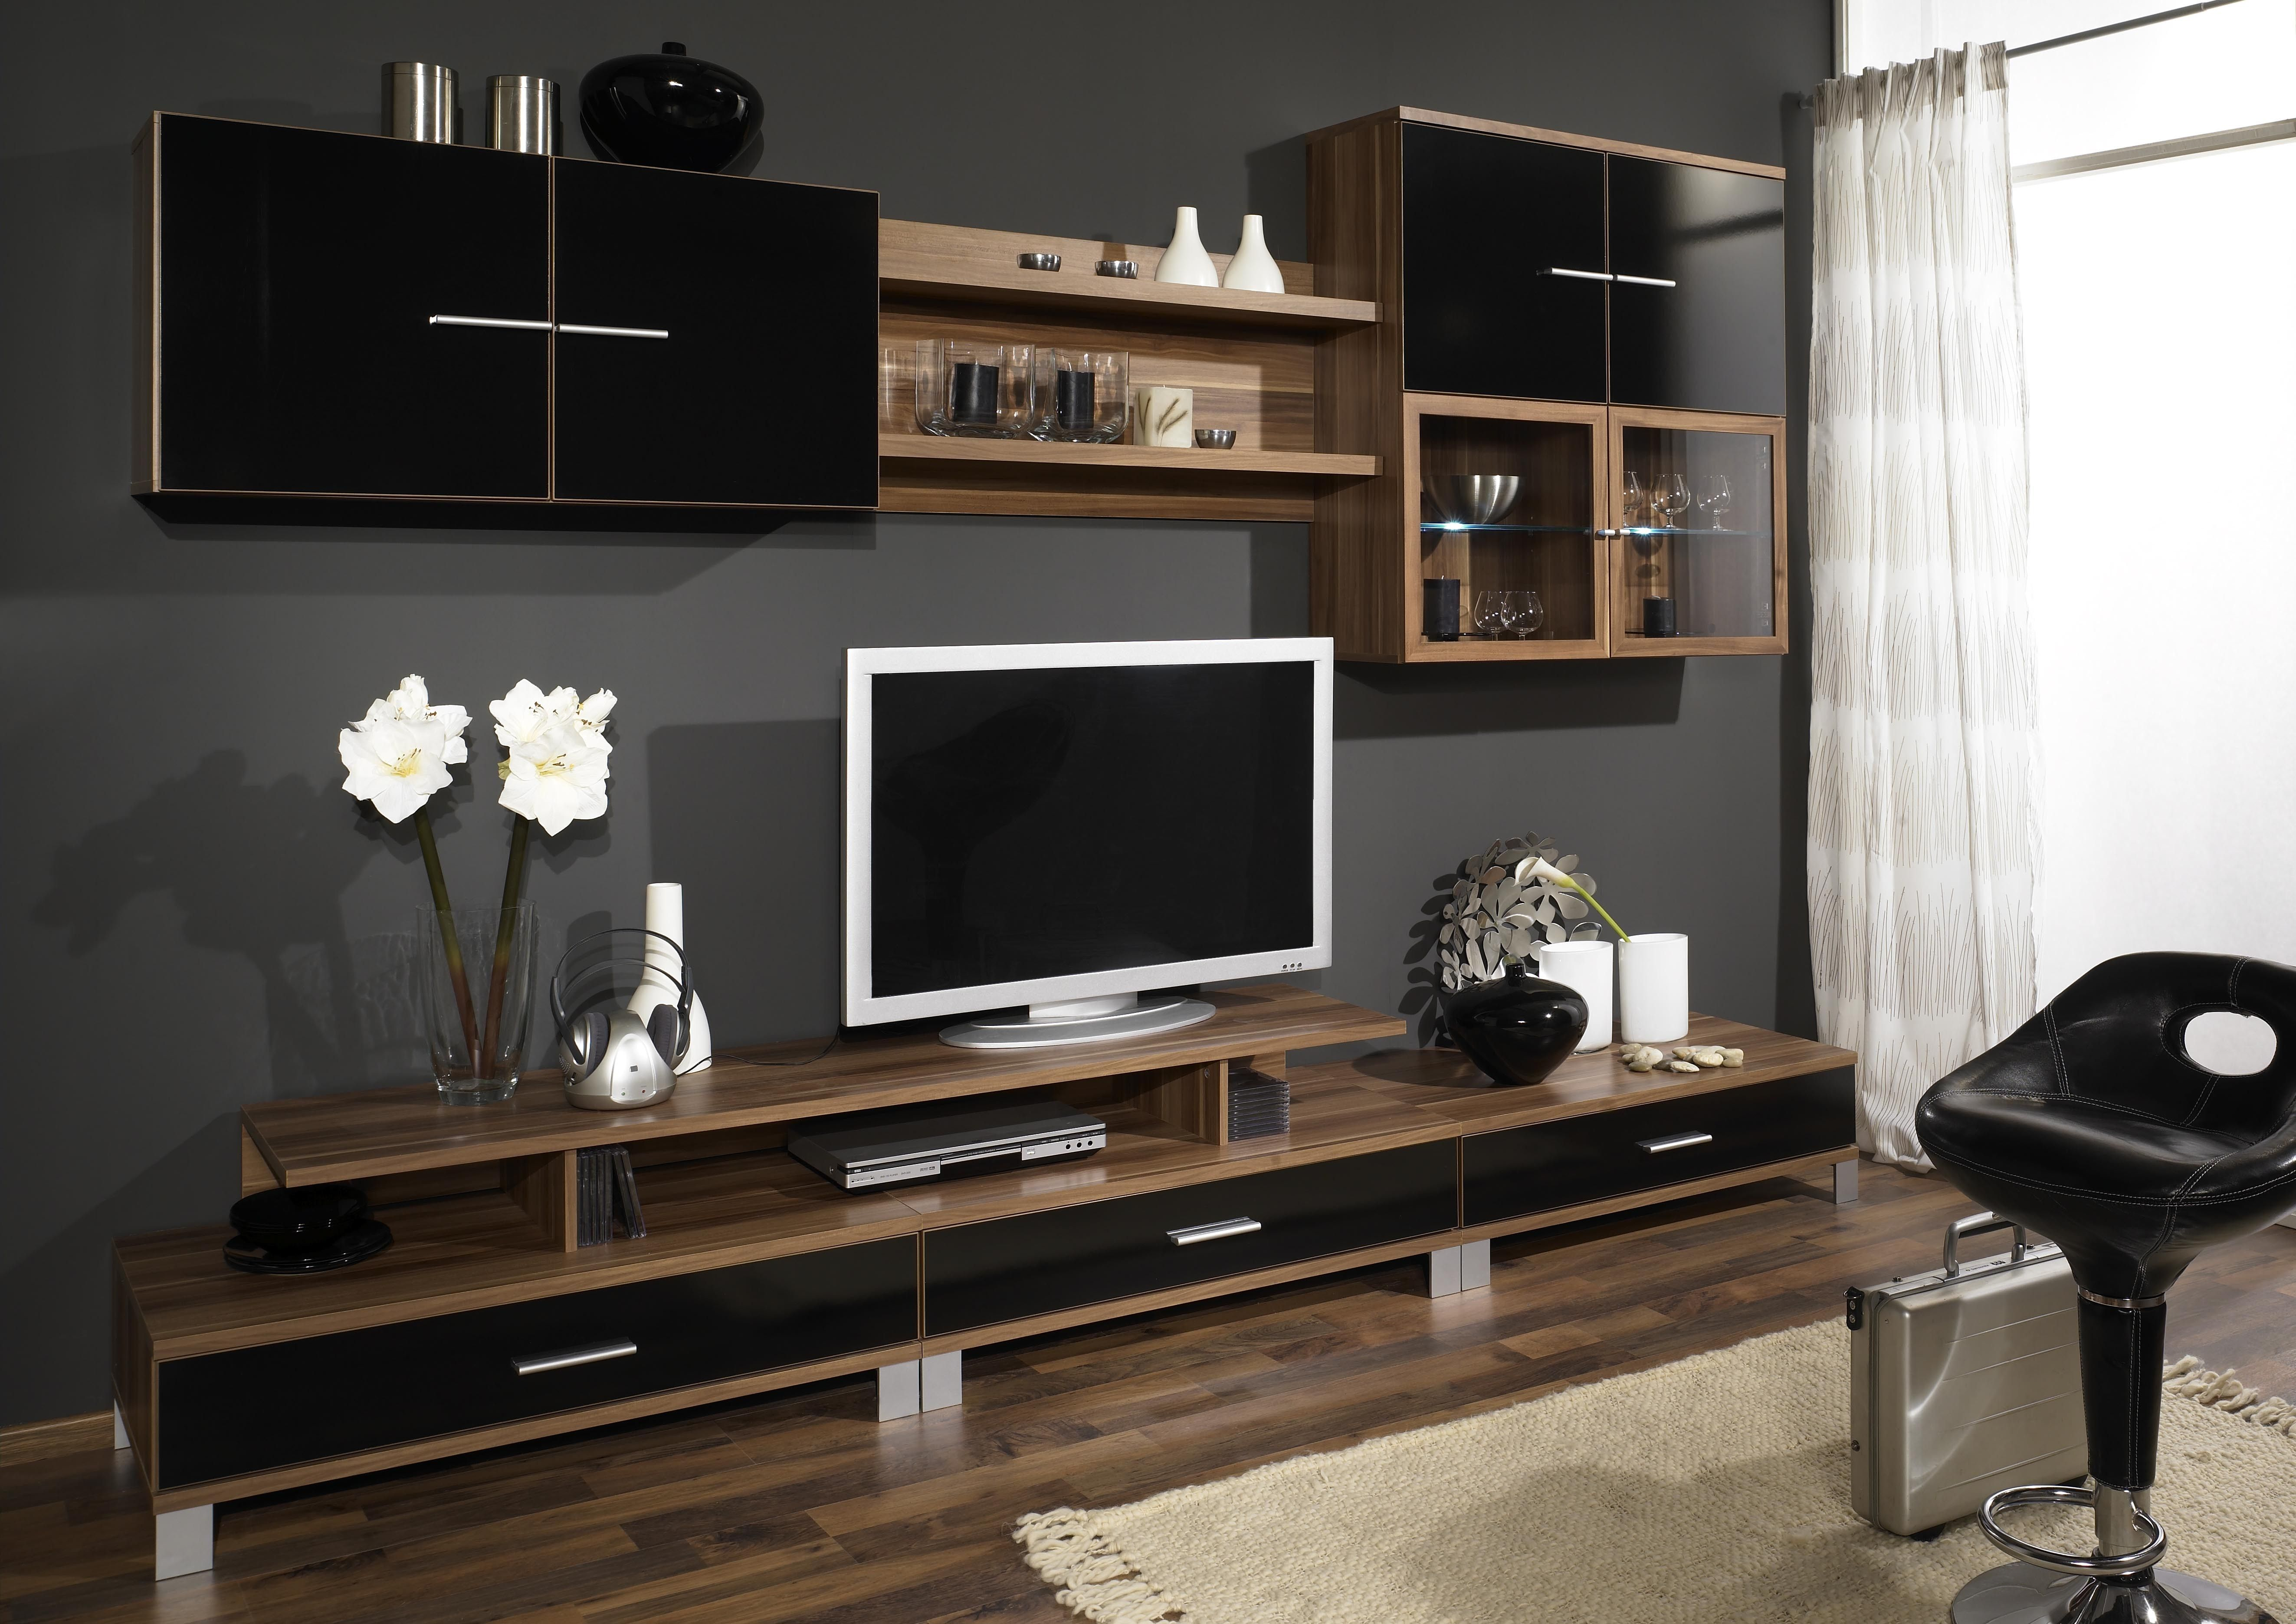 Creative Tv Wall Units for Living Rooms httpwwwhikriscom